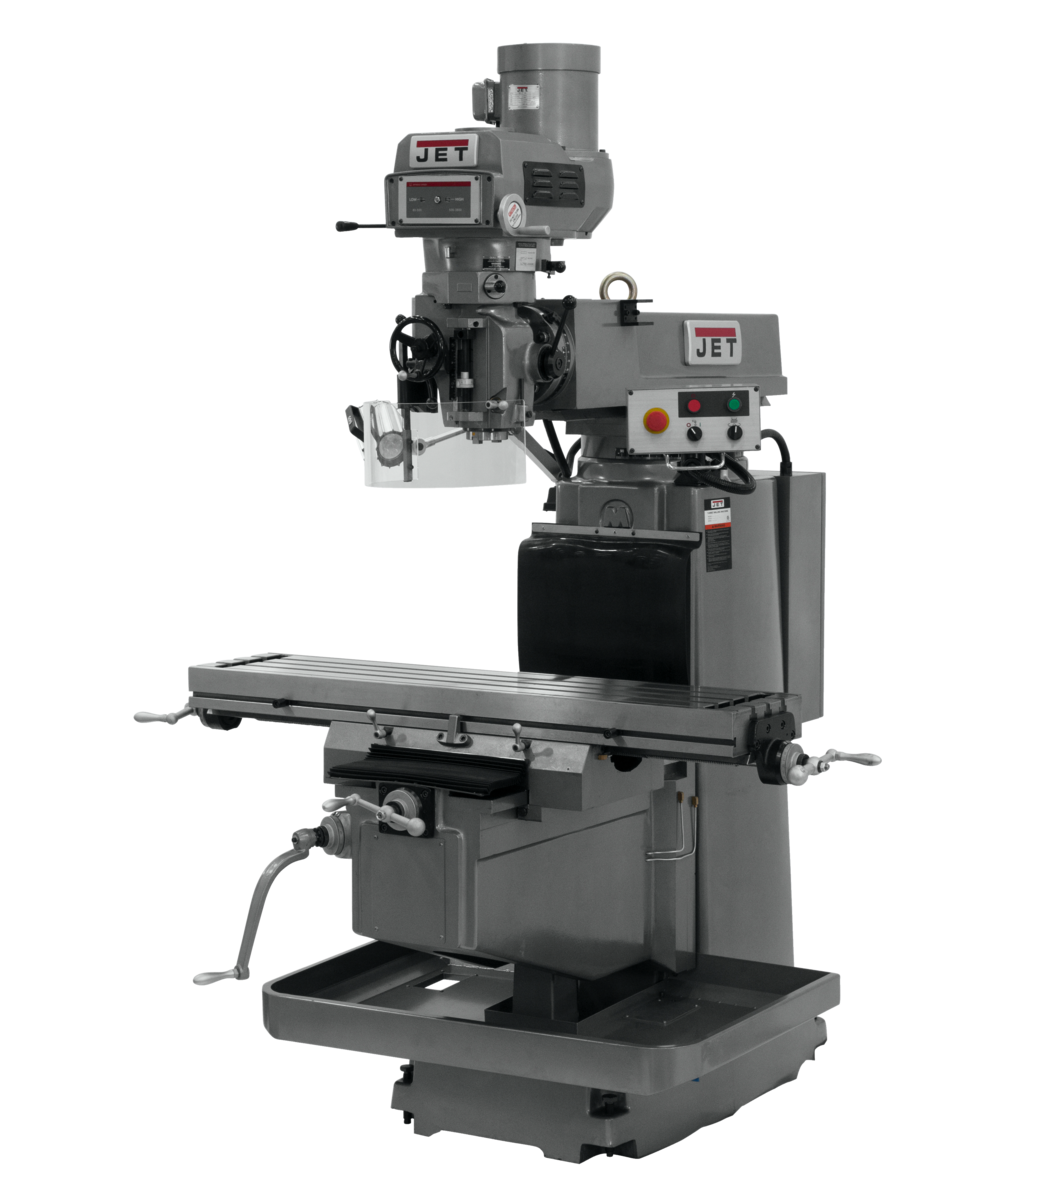 JTM-1254VS with 3-Axis ACU-RITE G-2 MILLPOWER CNC